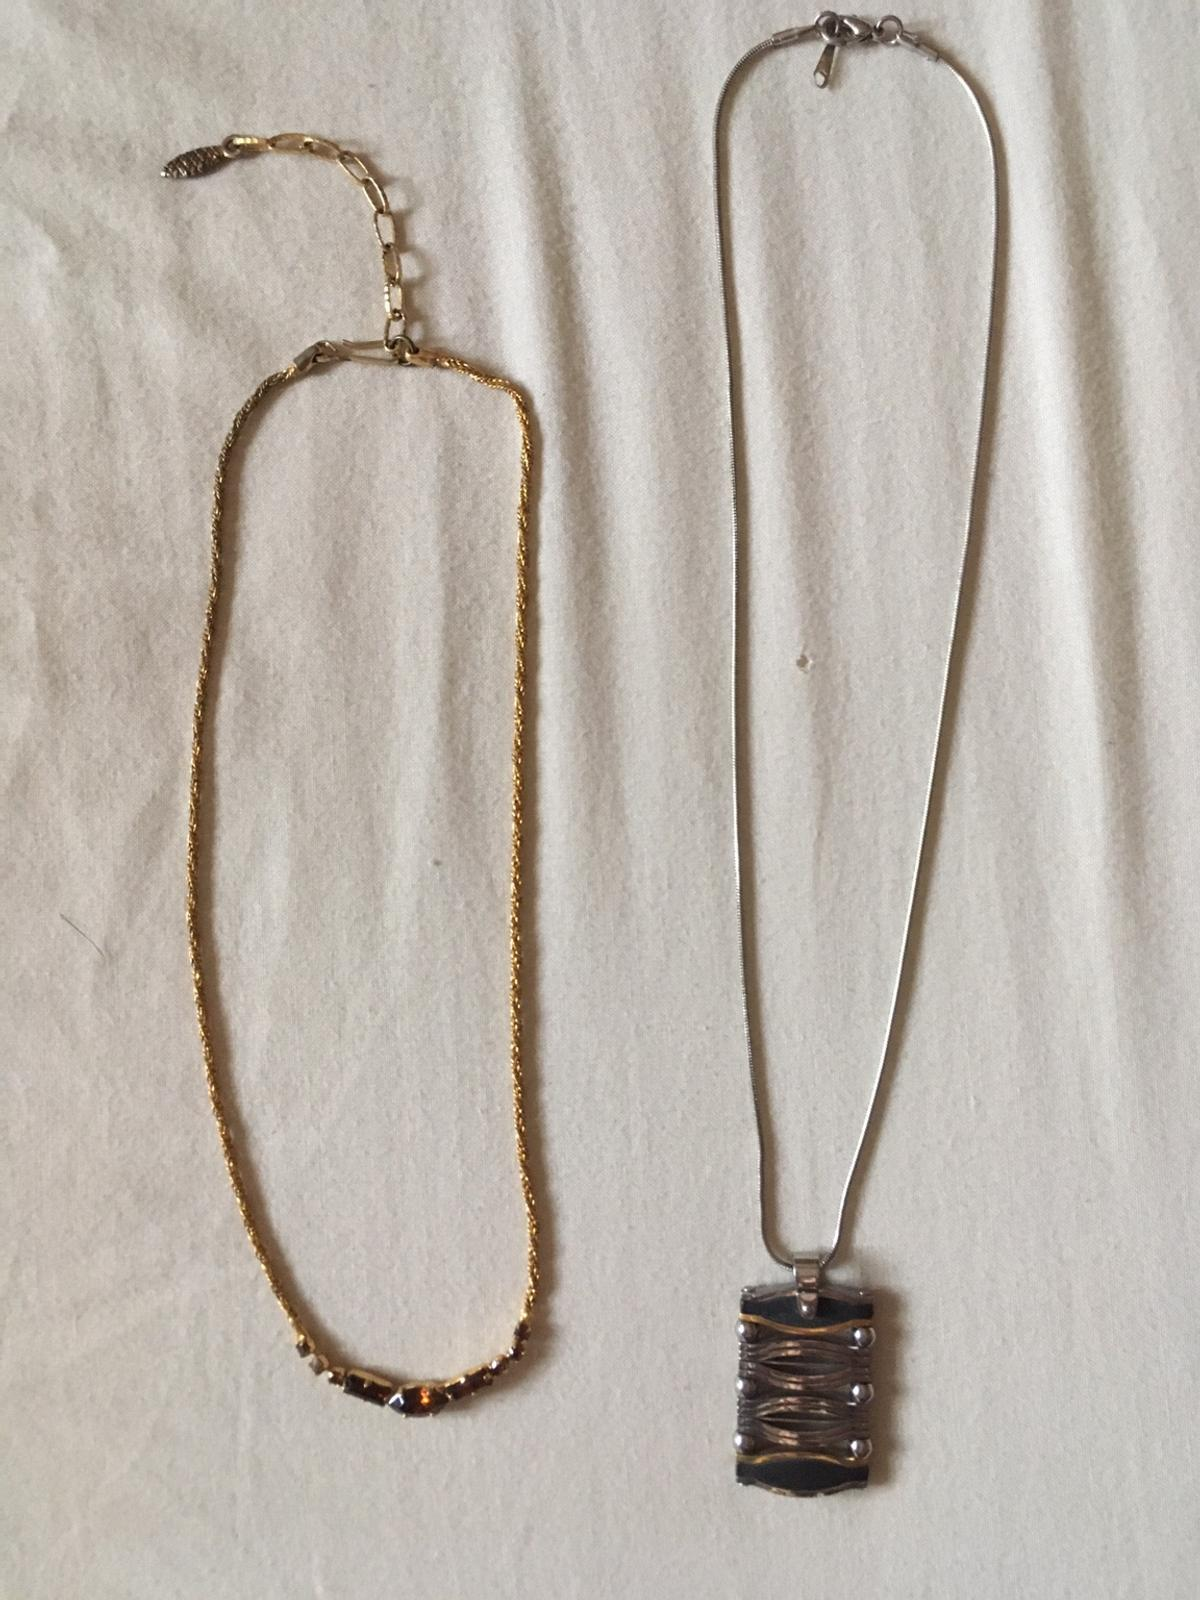 Necklaces 18ct Gold Plated In Nn17 Corby For 5 00 For Sale Shpock